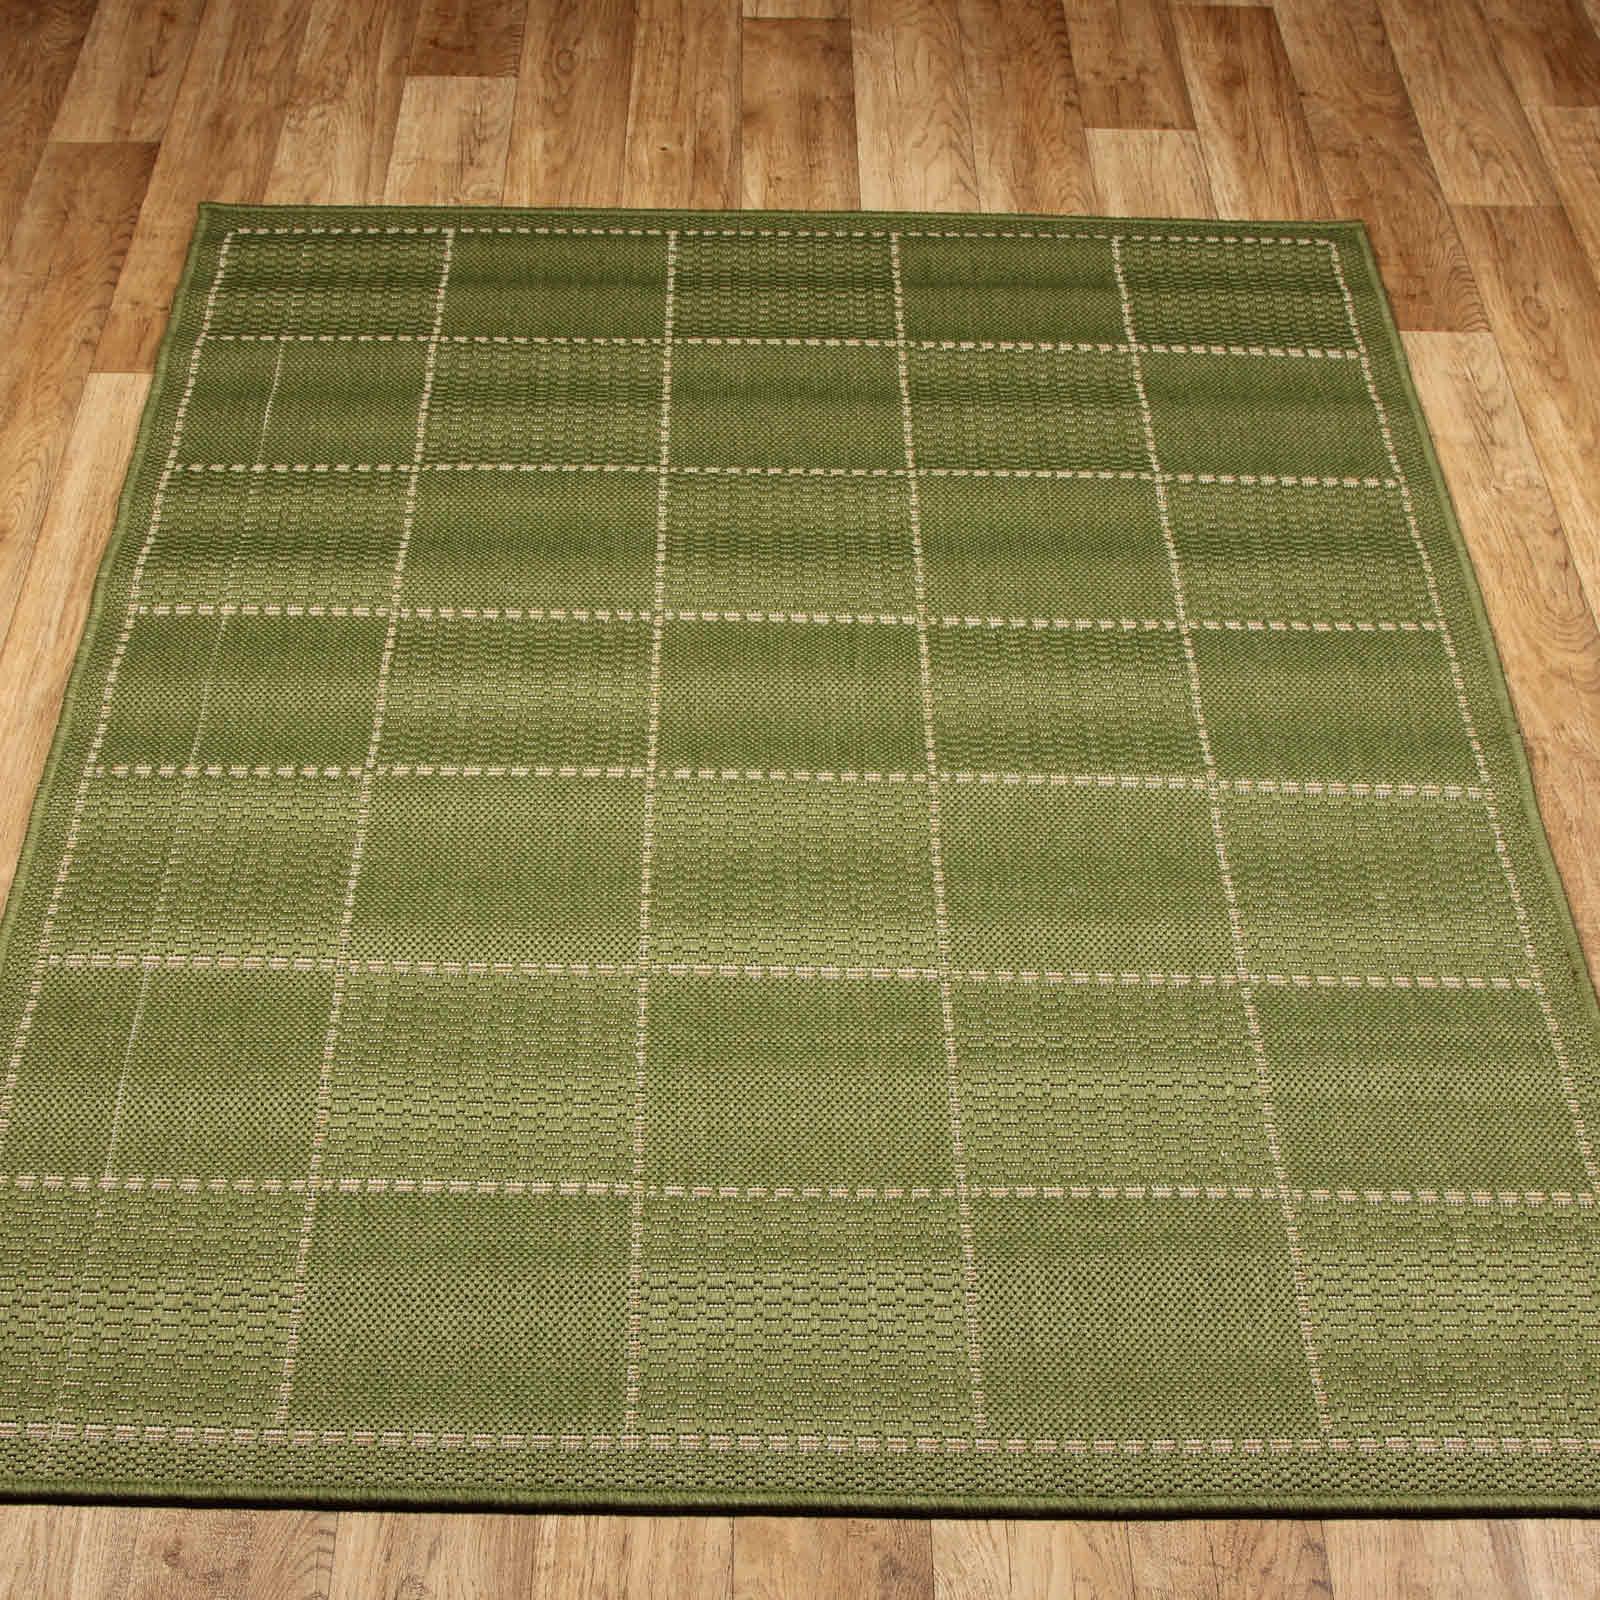 Super Sisalo Anti Slip Kitchen Rugs In Green Free Uk